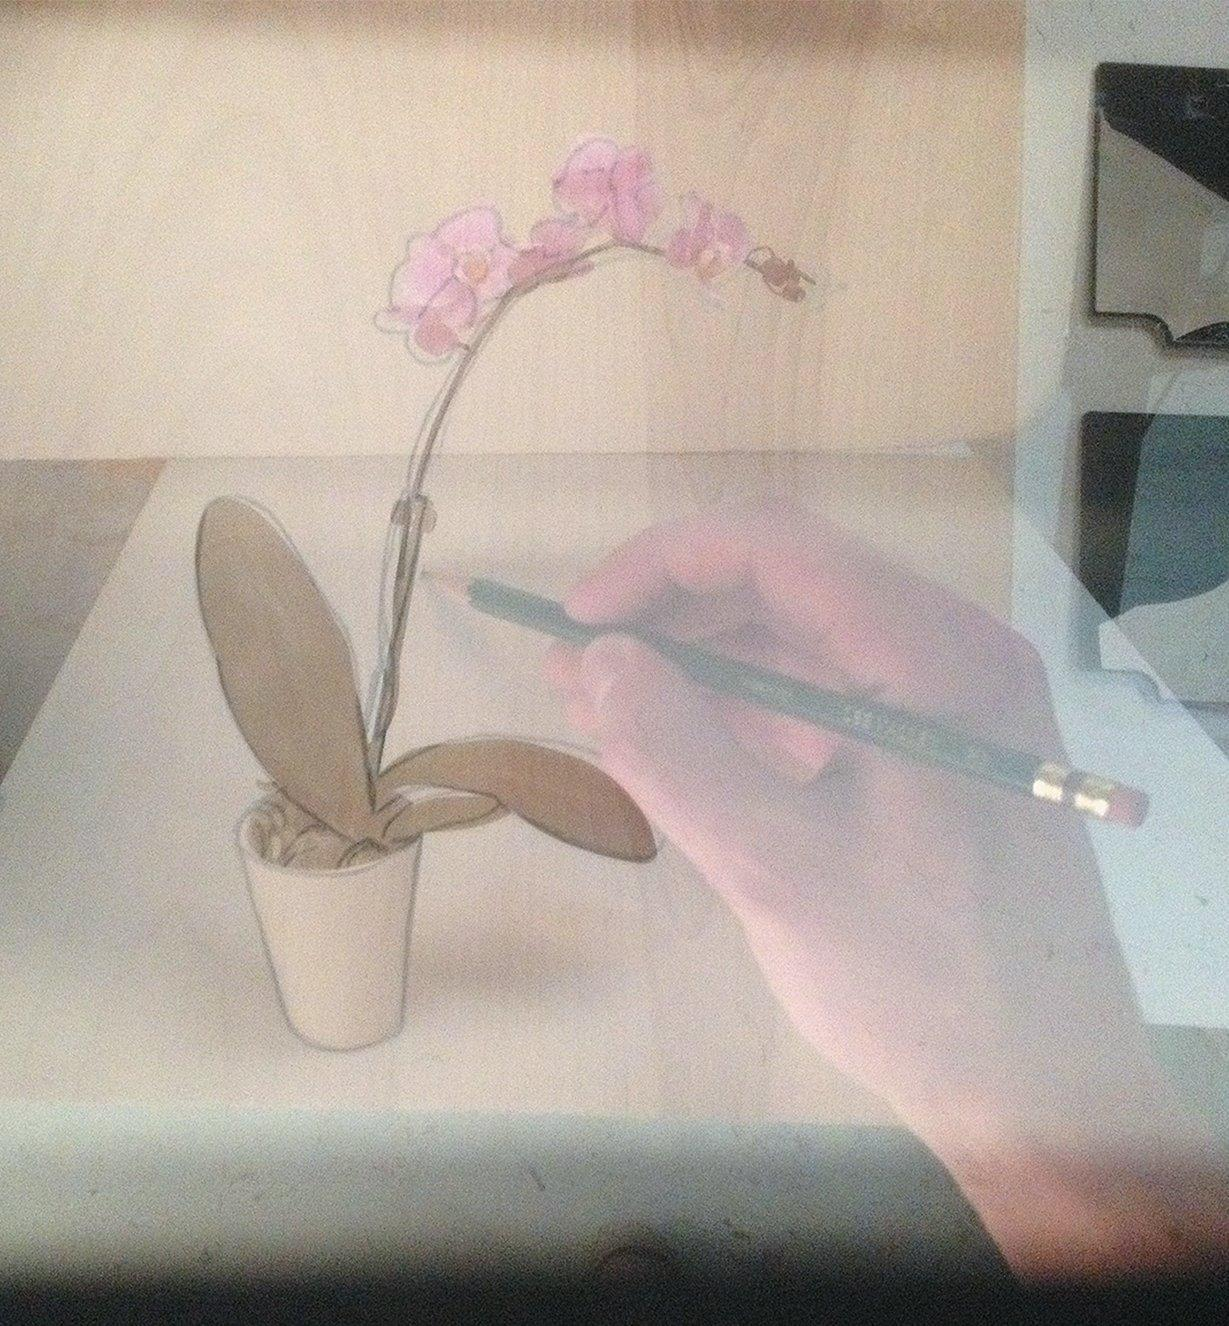 Tracing the outline of a flower as seen through the viewfinder